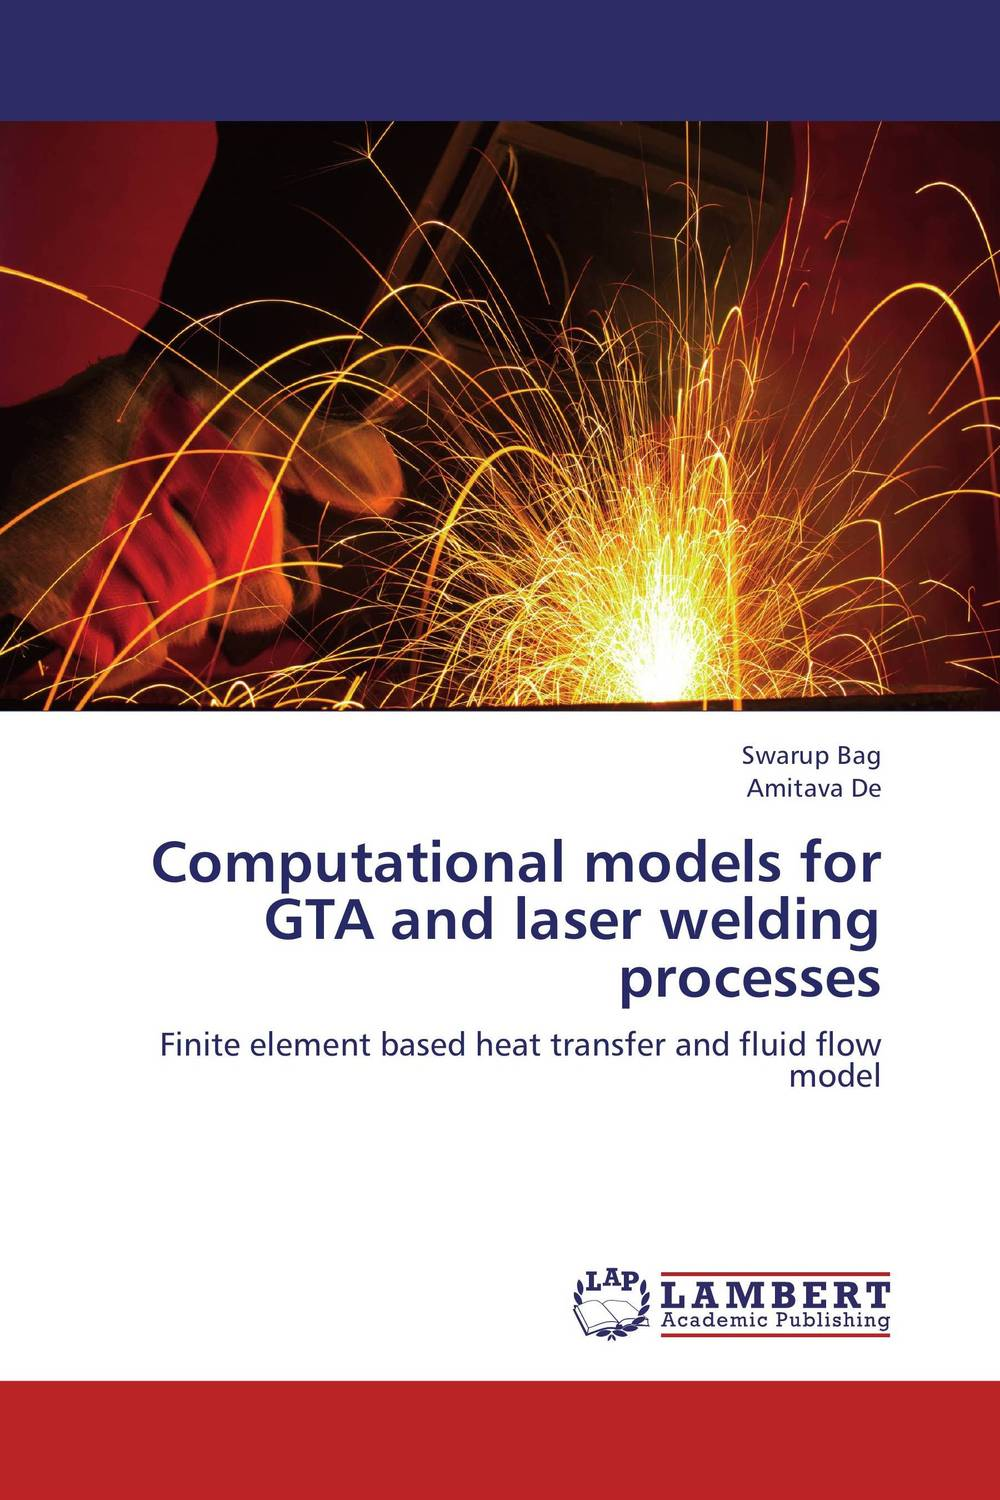 Computational models for GTA and laser welding processes development of a computational interface for small hydropower plant